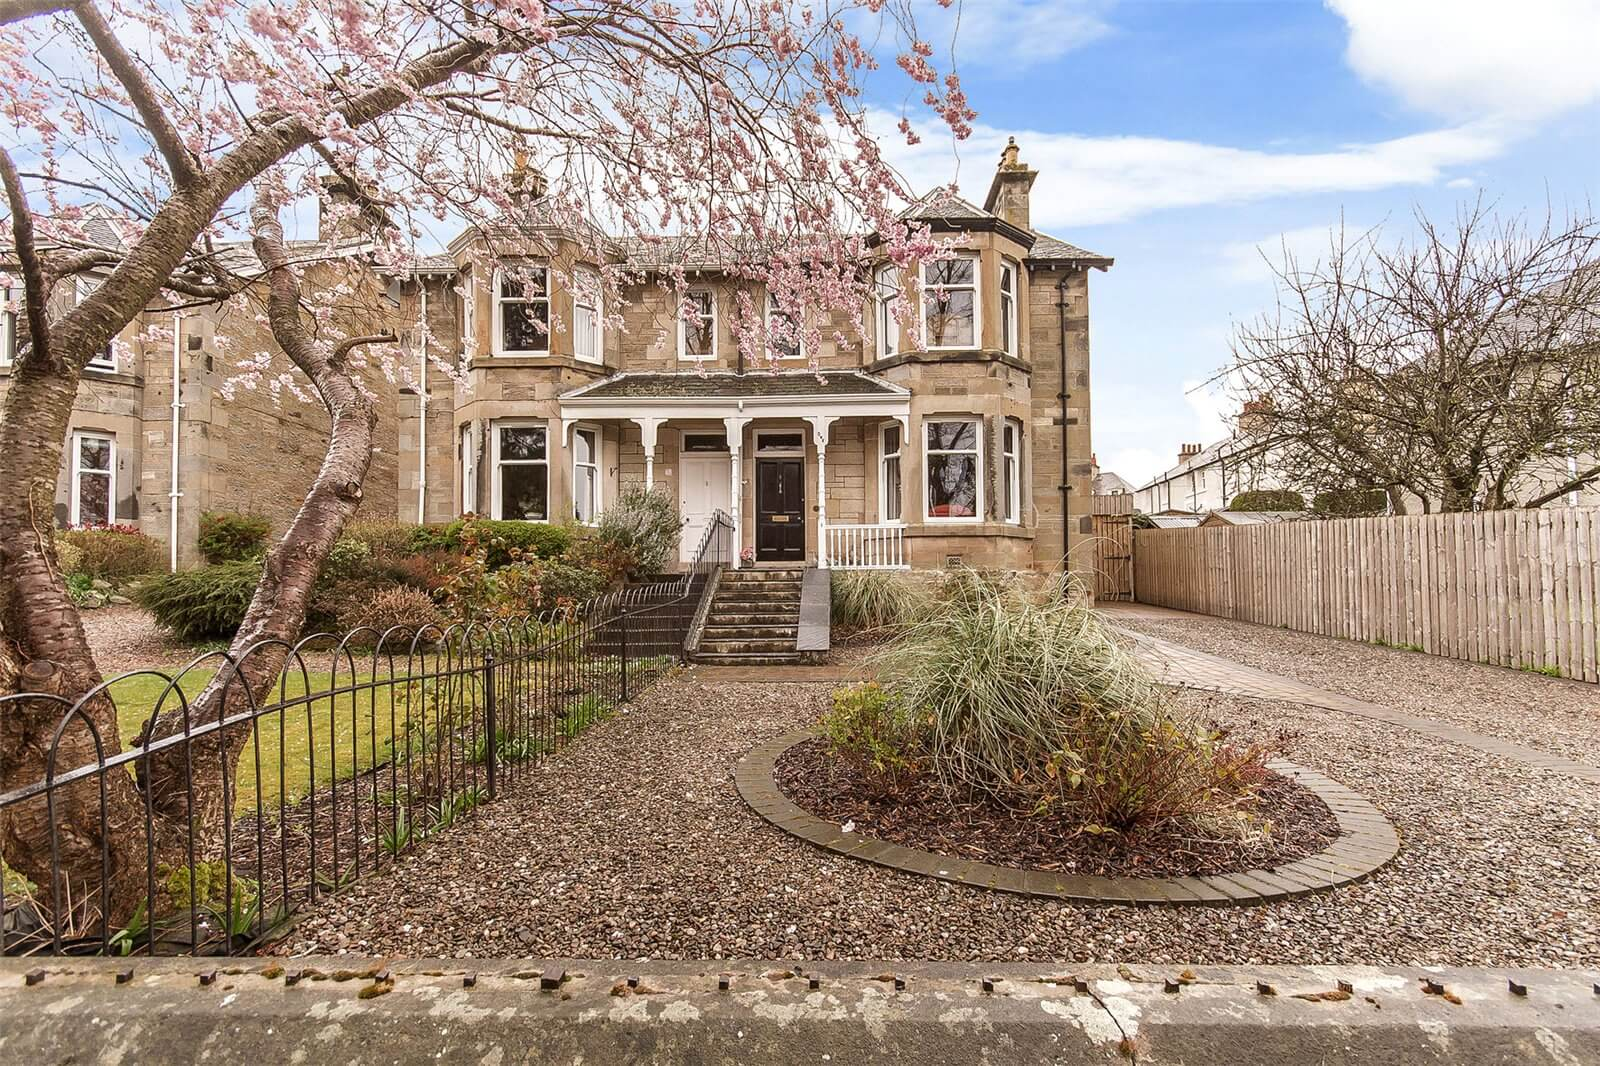 Our latest properties for sale and to let (16th April 2019)